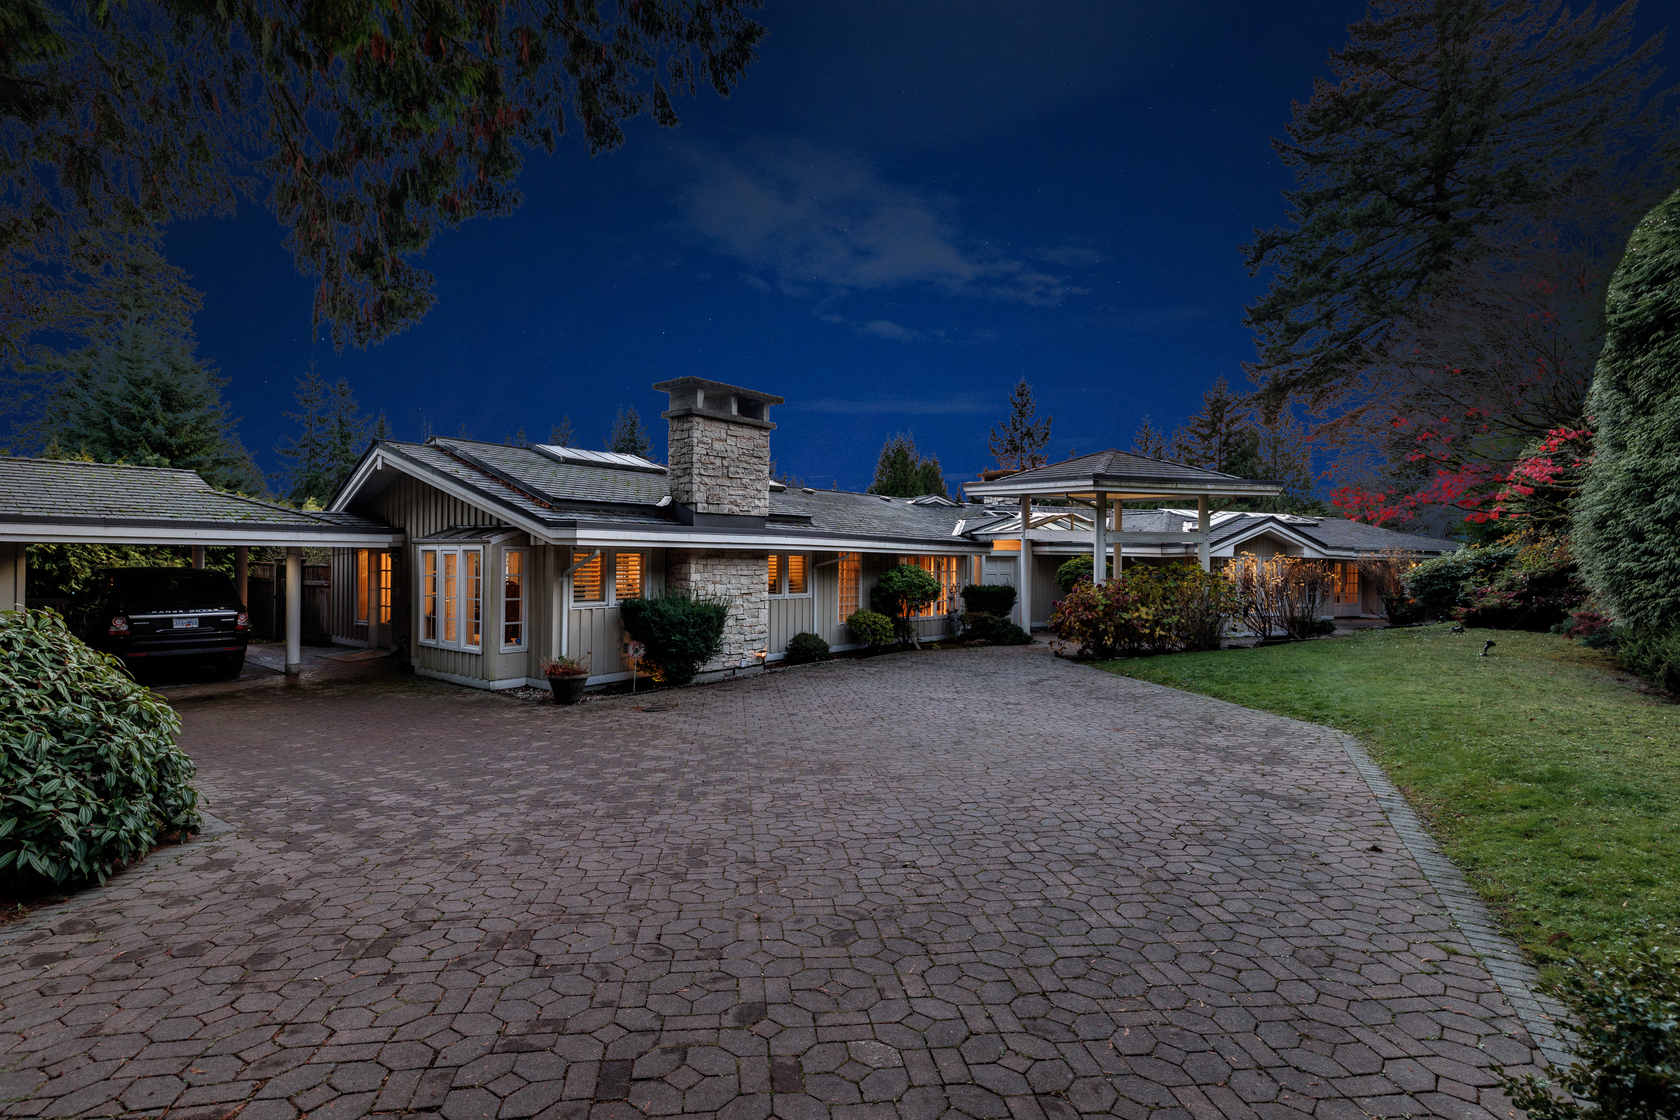 untitled-16 at 888 Pyrford Road, British Properties, West Vancouver